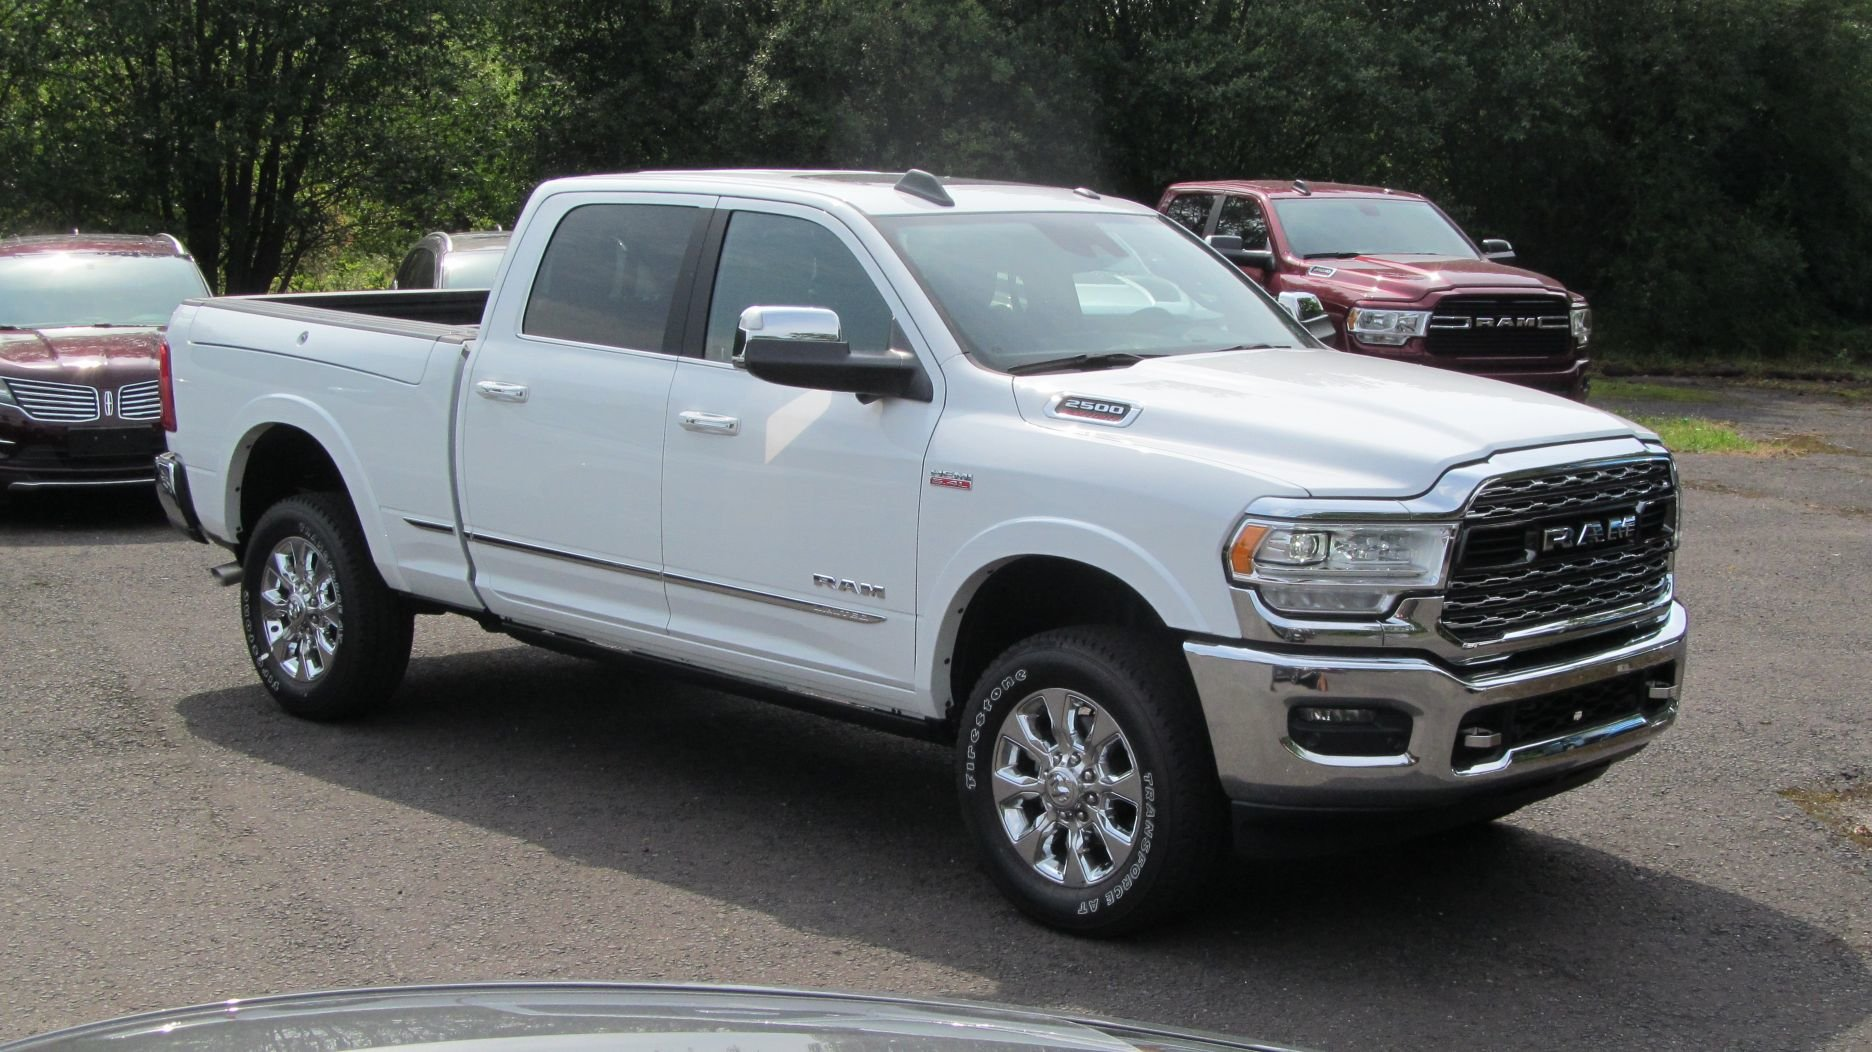 2020 Dodge RAM 2500 6.4L V8 LIMITED 4x4 Crew Cab For Sale (picture 1 of 6)